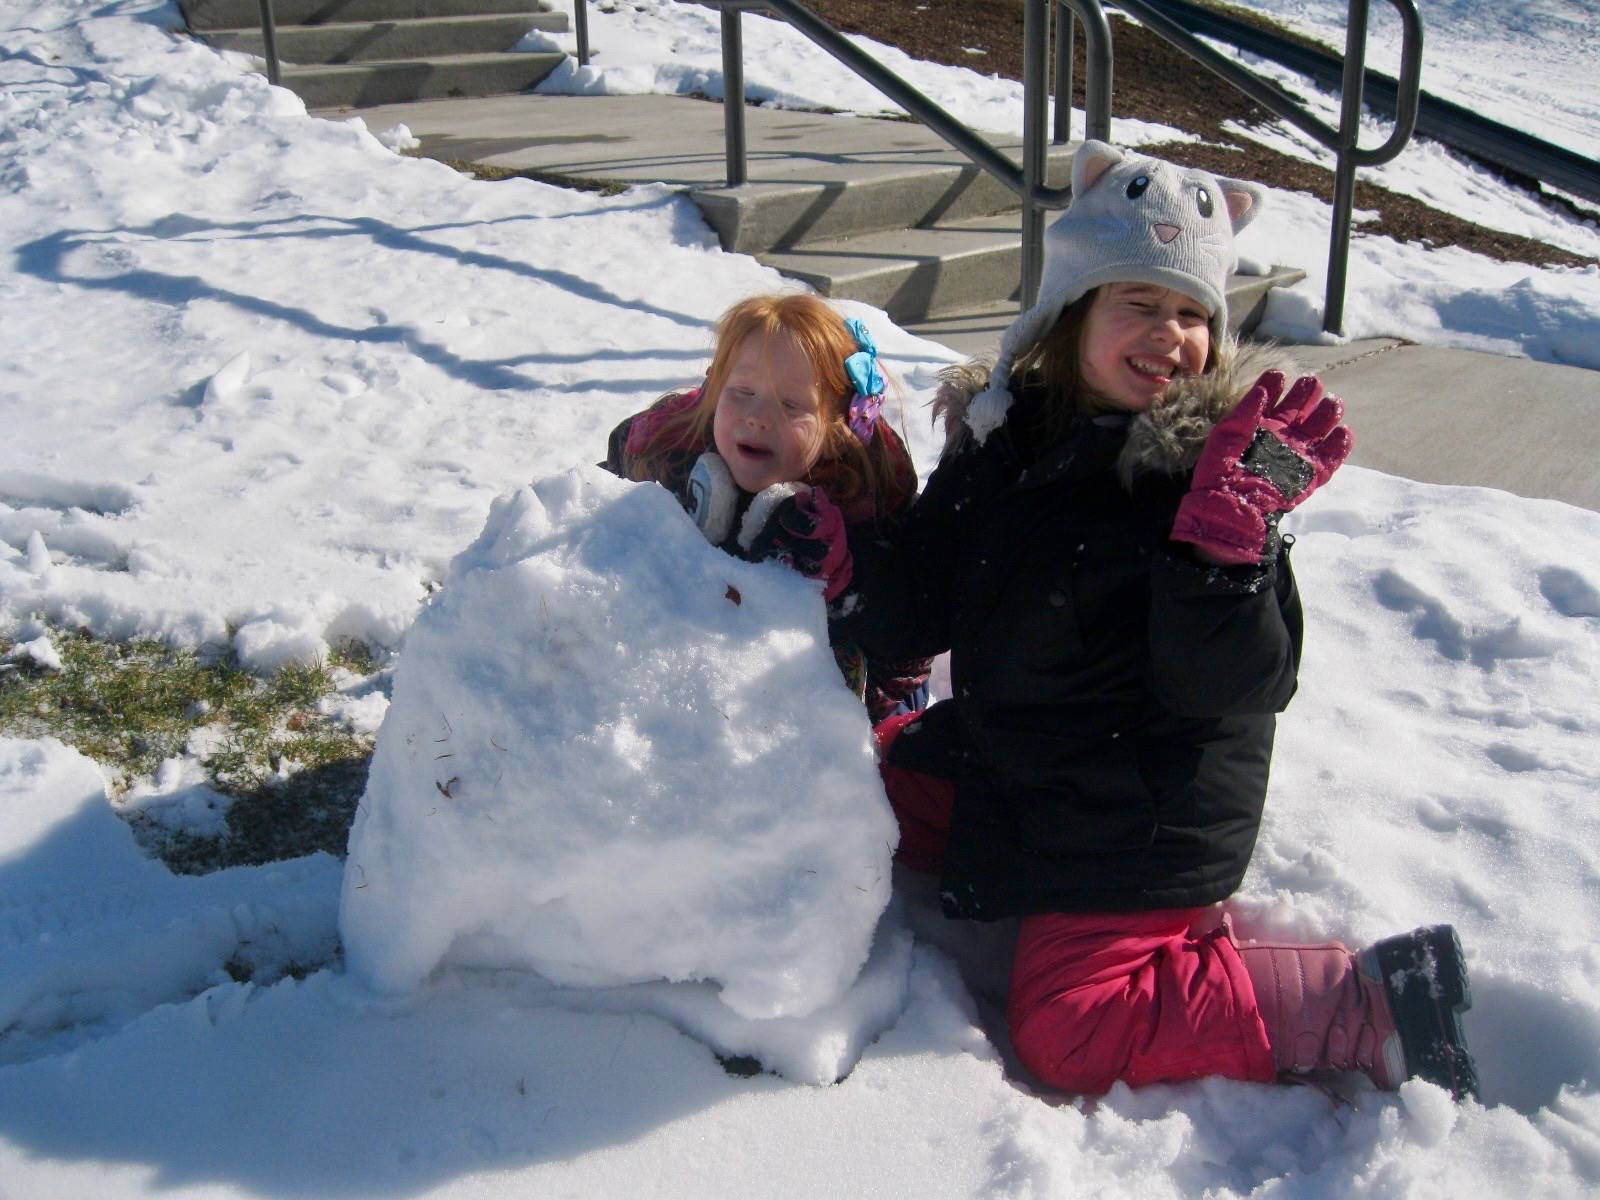 2 students playing in snow.